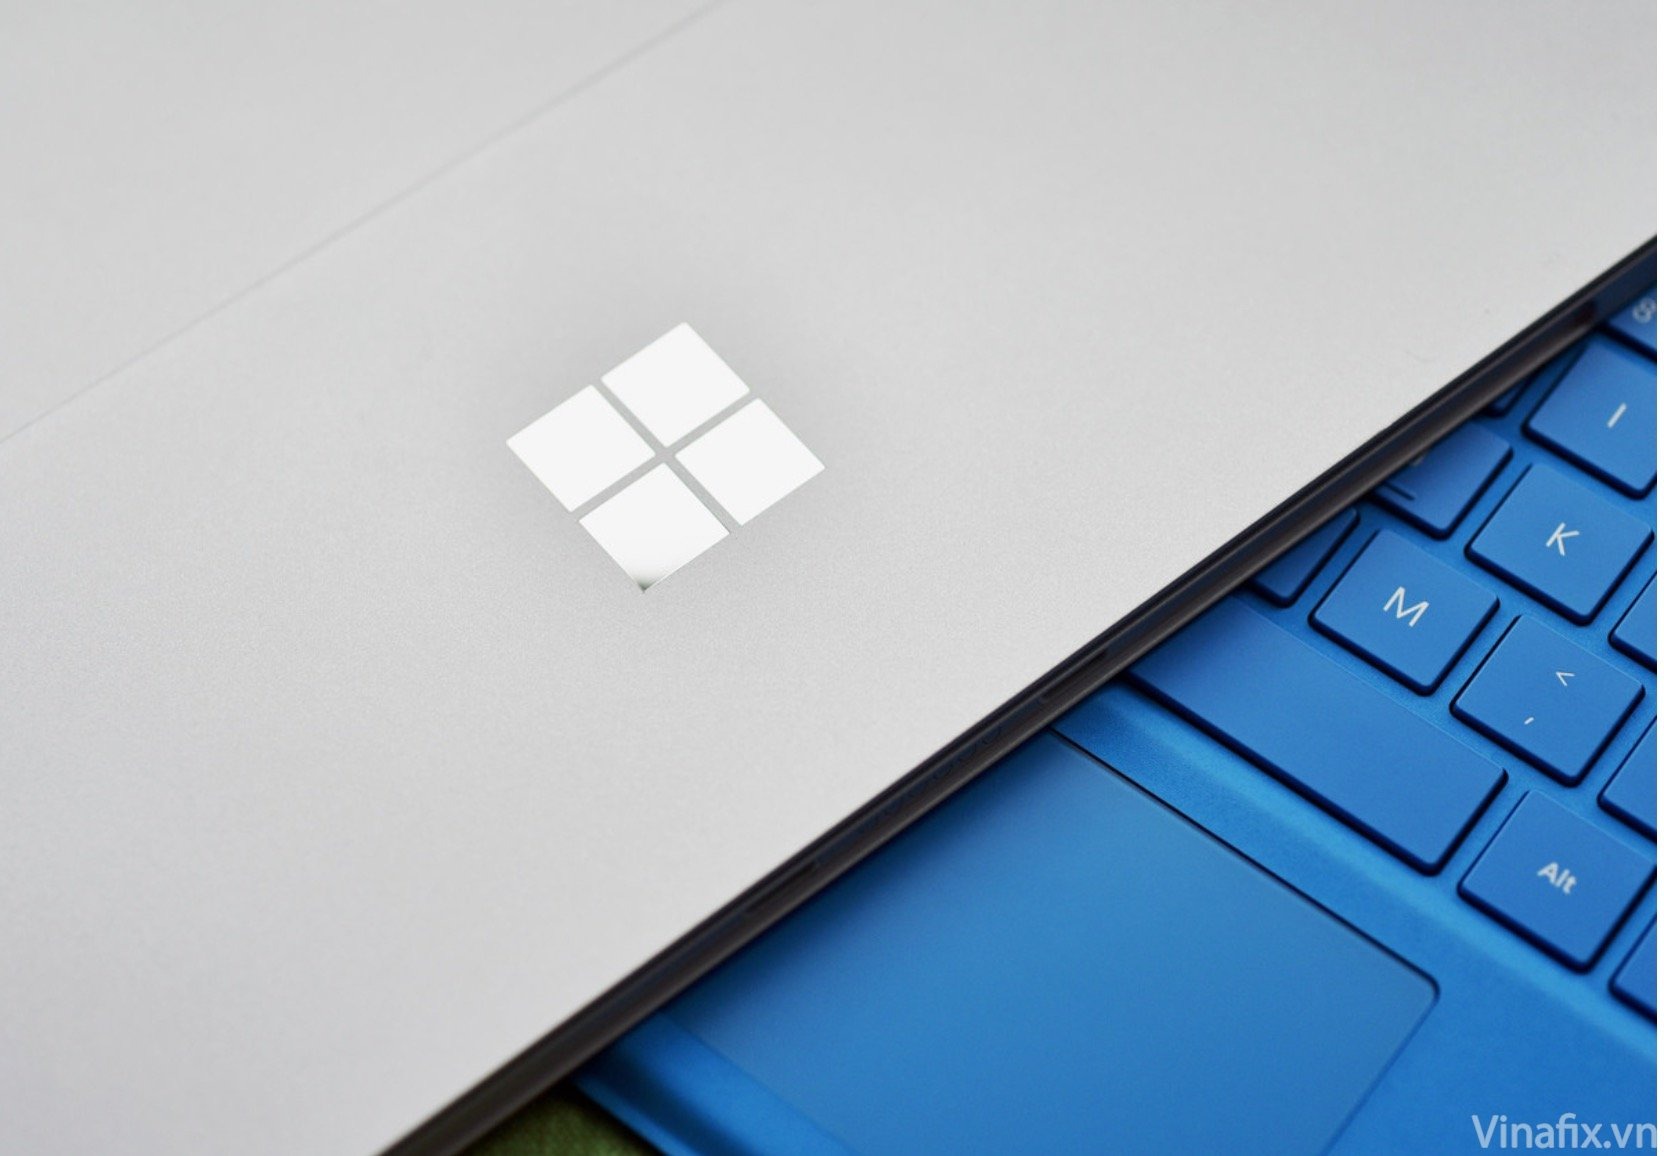 More Surface all-in-one.